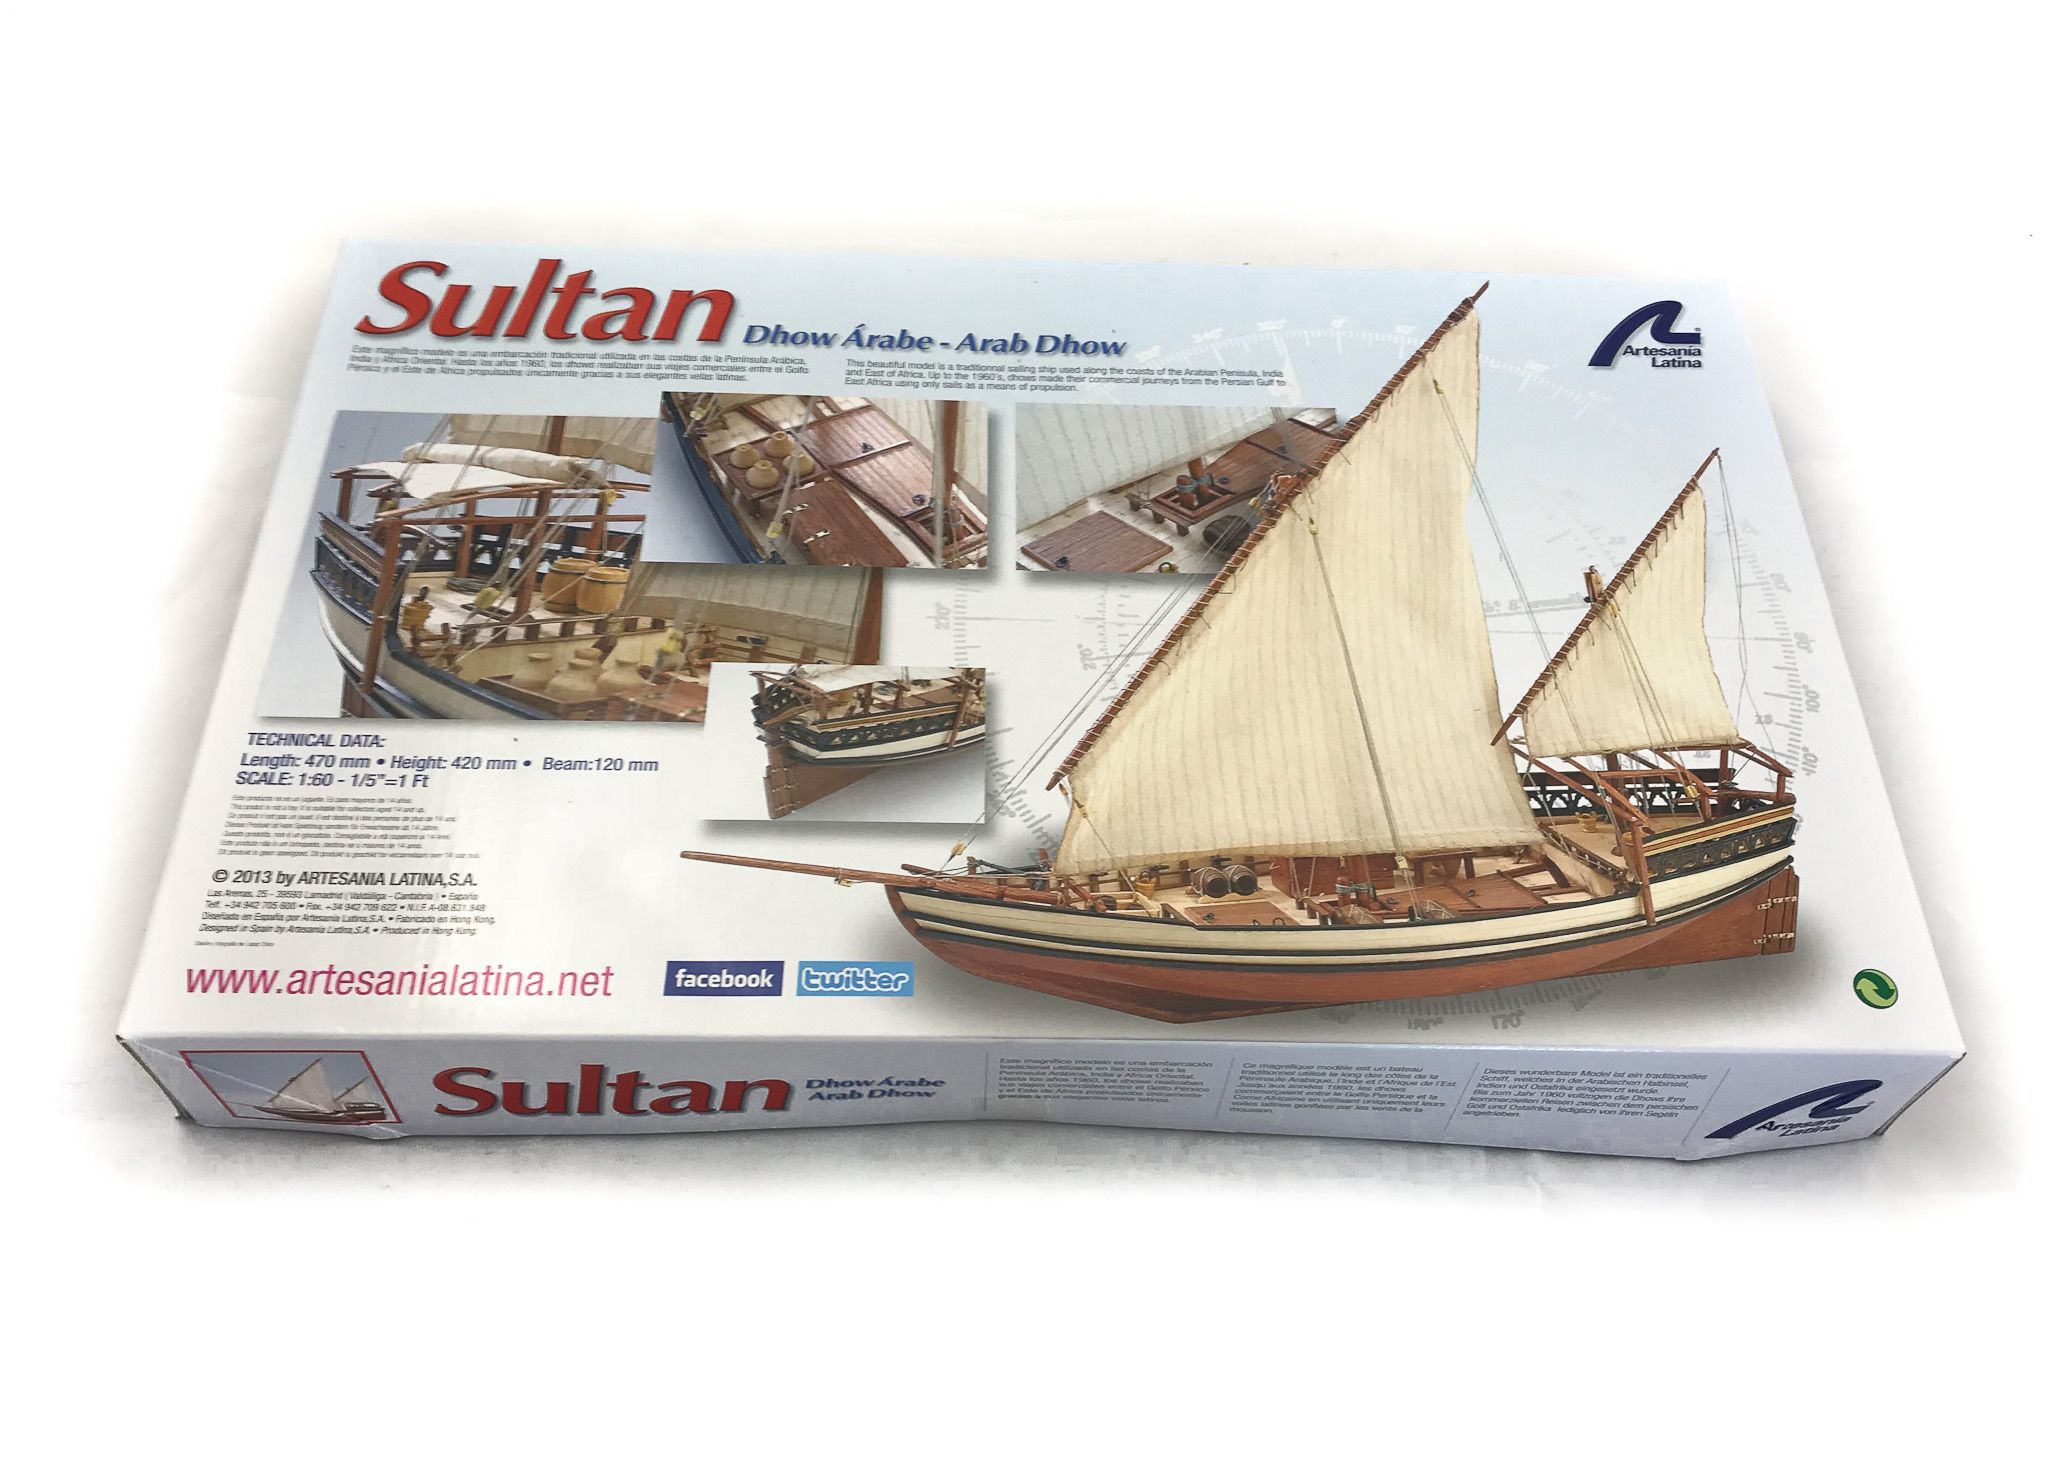 1121-13685-Sultan-Arab-Dhow-Model-Boat-Kit-Artesania-latina-22165